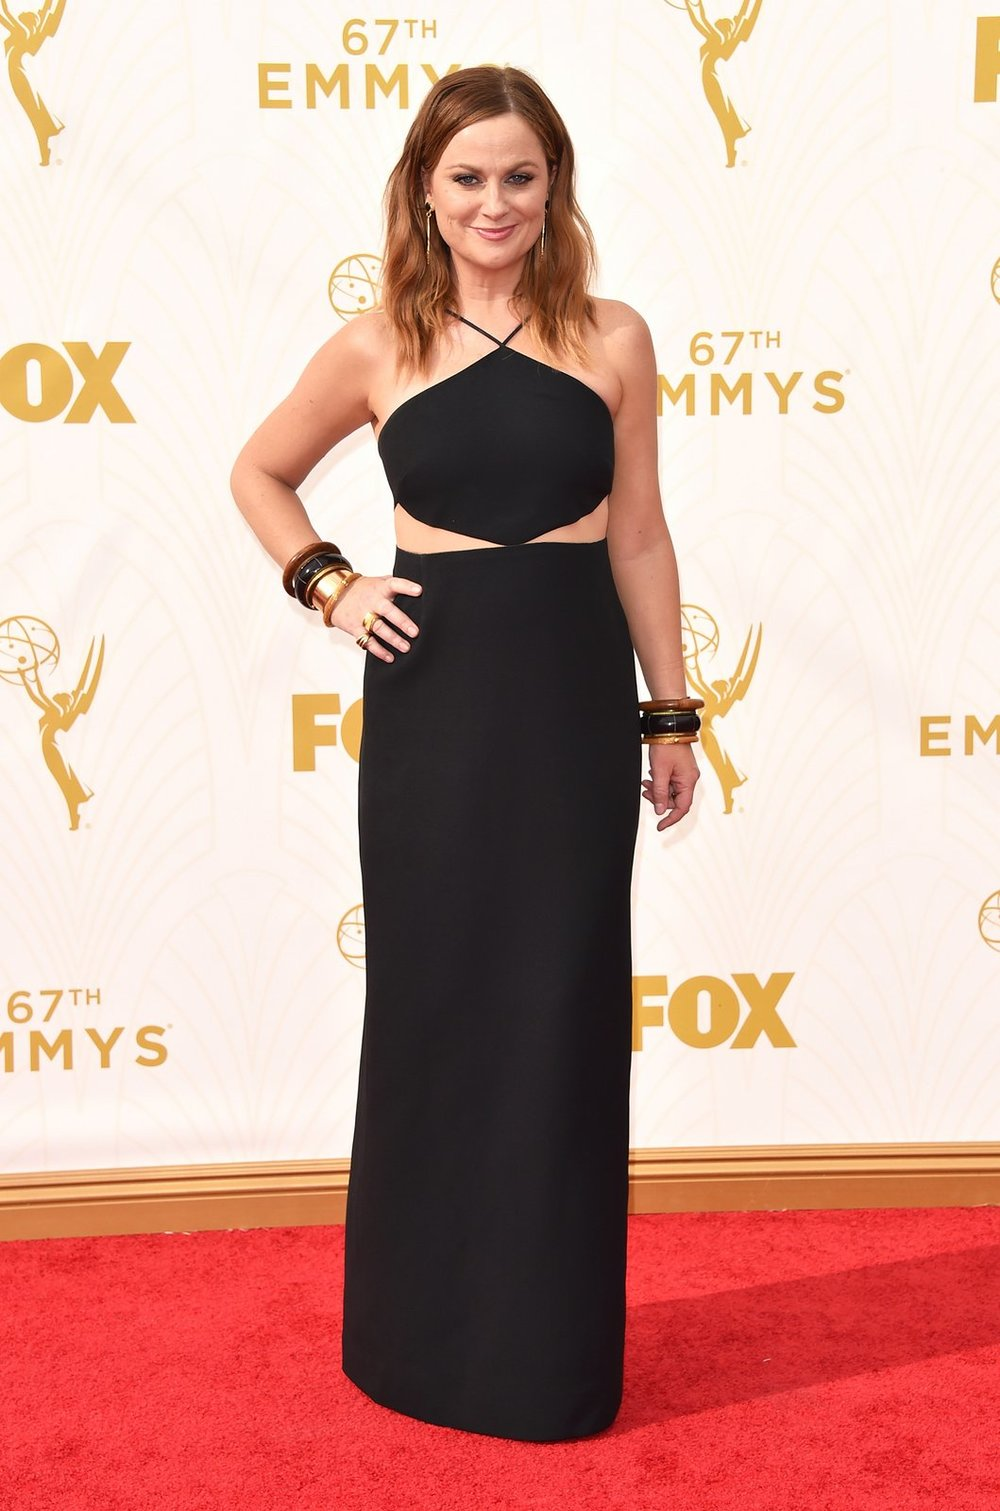 amy-poehler-emmys-red-carpet-2015.jpg